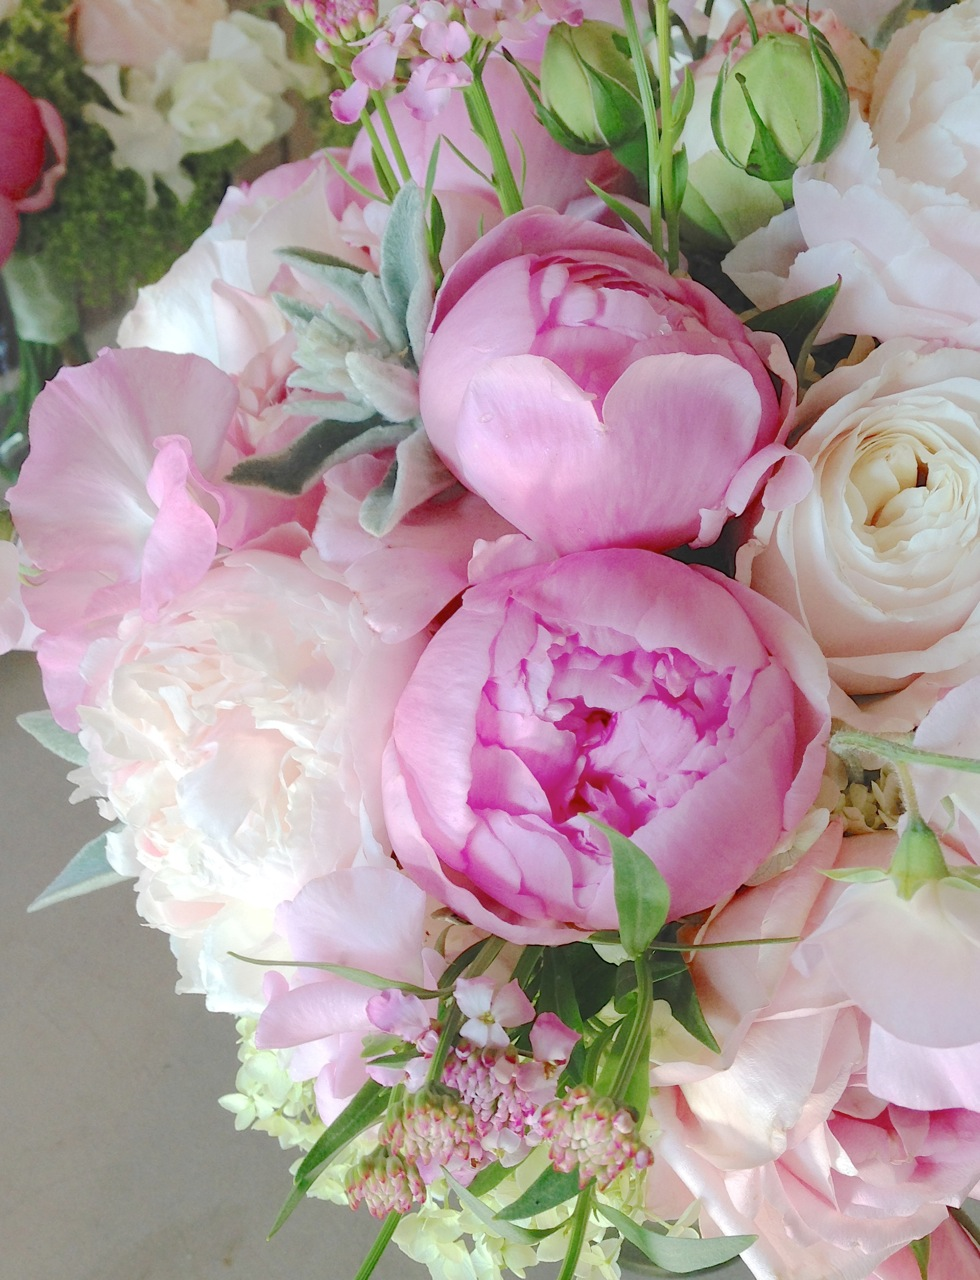 christopher flowers seattle wedding bouquet blush pink ivory peony garden rose sweet pea hydrangea green ivory - Garden Rose And Peony